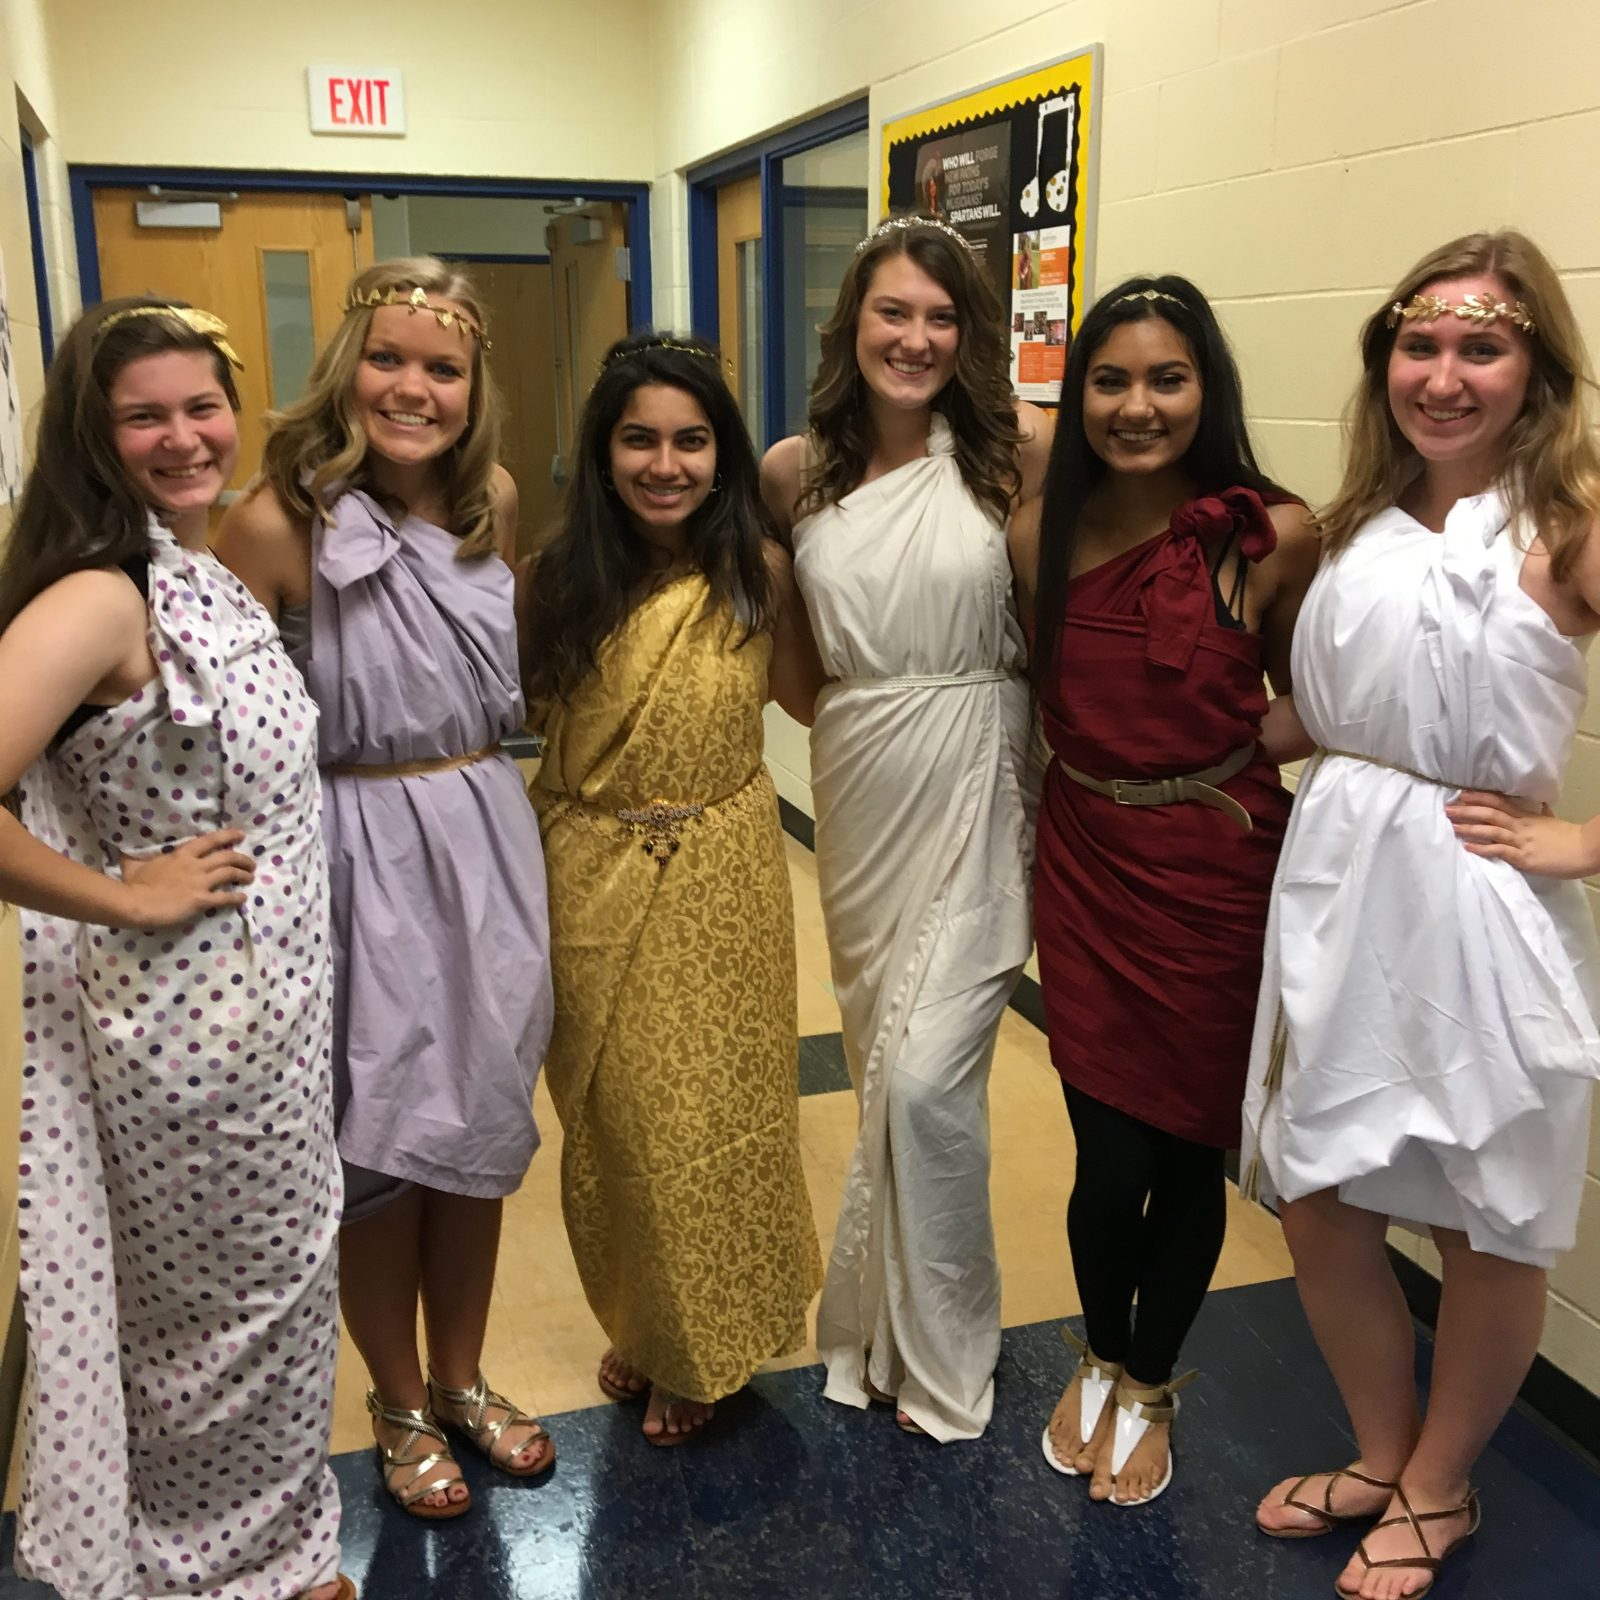 Seniors (Left to Right) Sophie Walcher, Abbey Cook, Sharvari Brahme, Grace Deraad, Eishat Ahmed, Kelsey Bartalsky